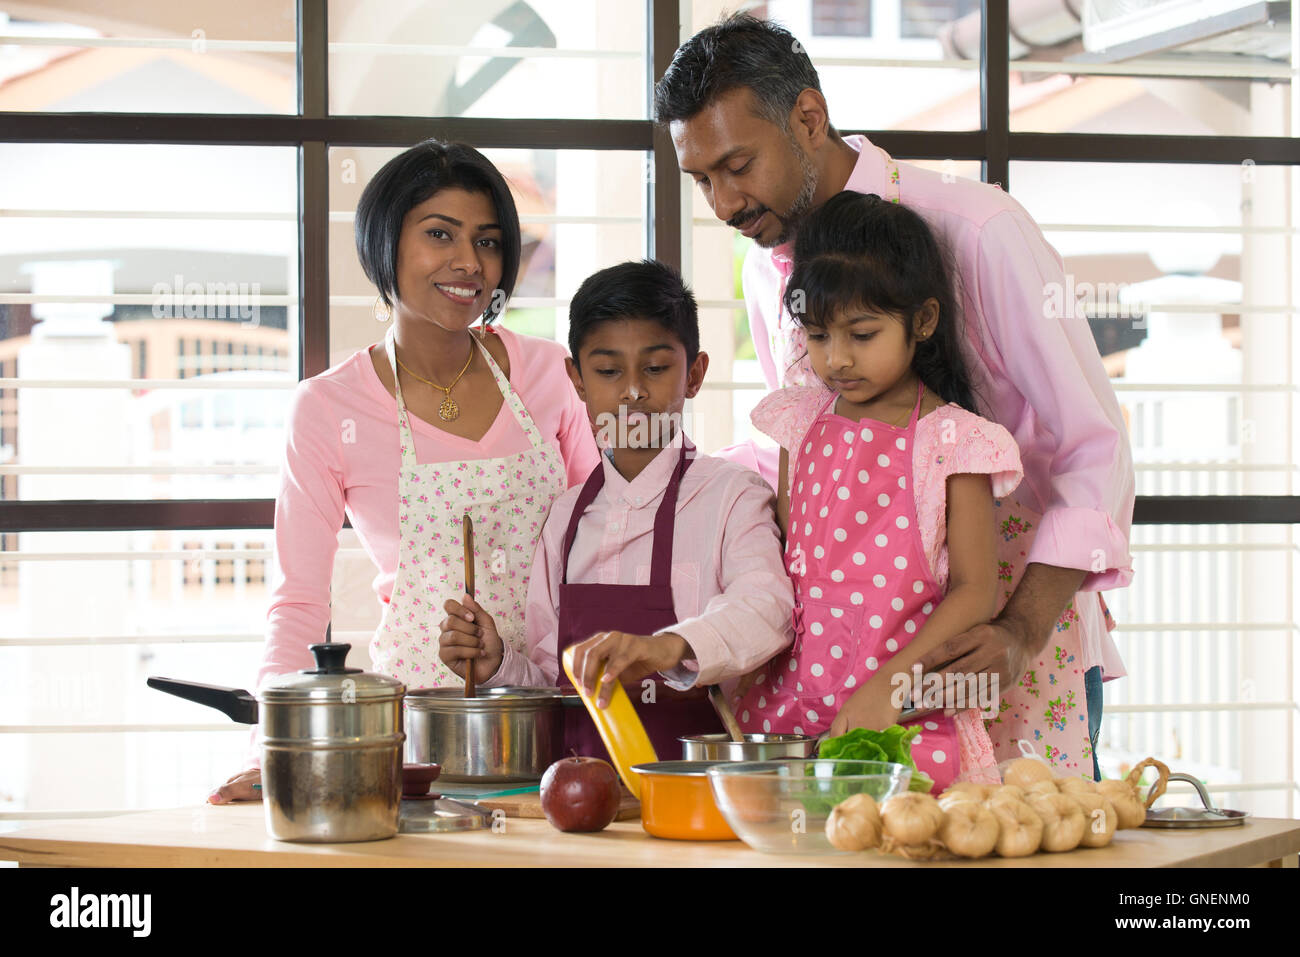 Indian Family Spending Quality Time Busy Cooking At Home Stock Photo